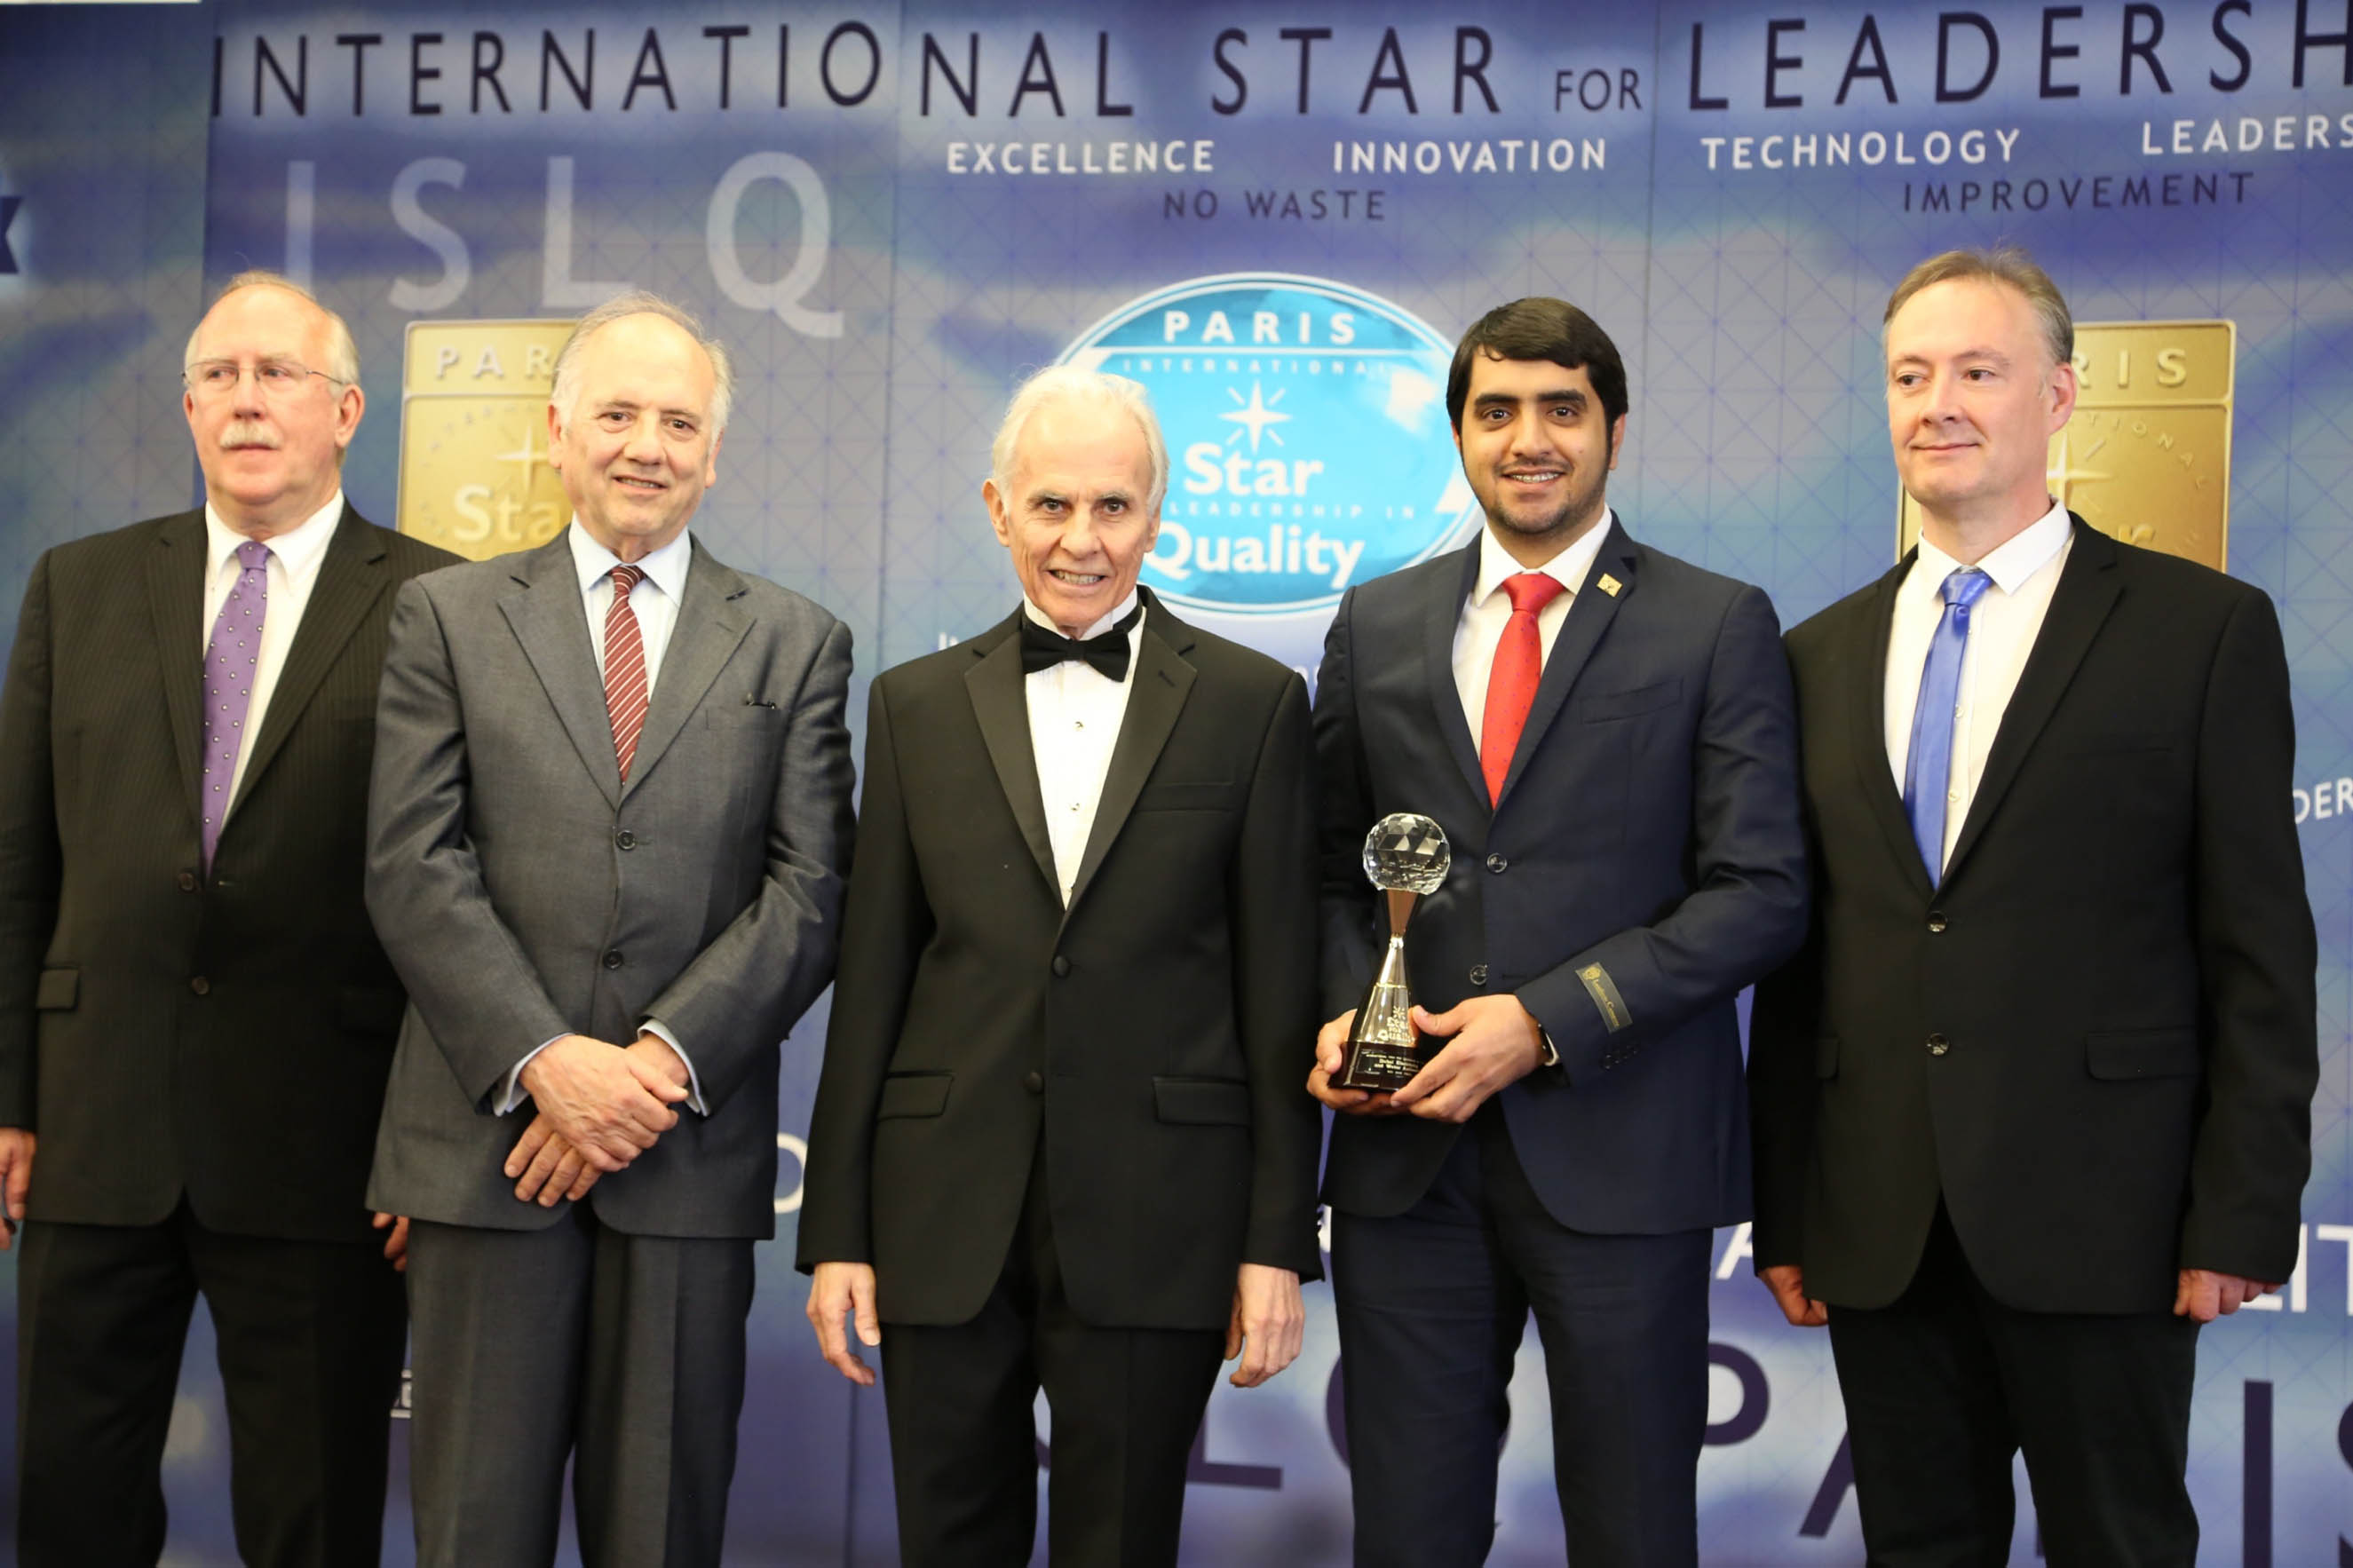 DEWA wins International Star for Leadership in Quality Award for outstanding excellence and quality